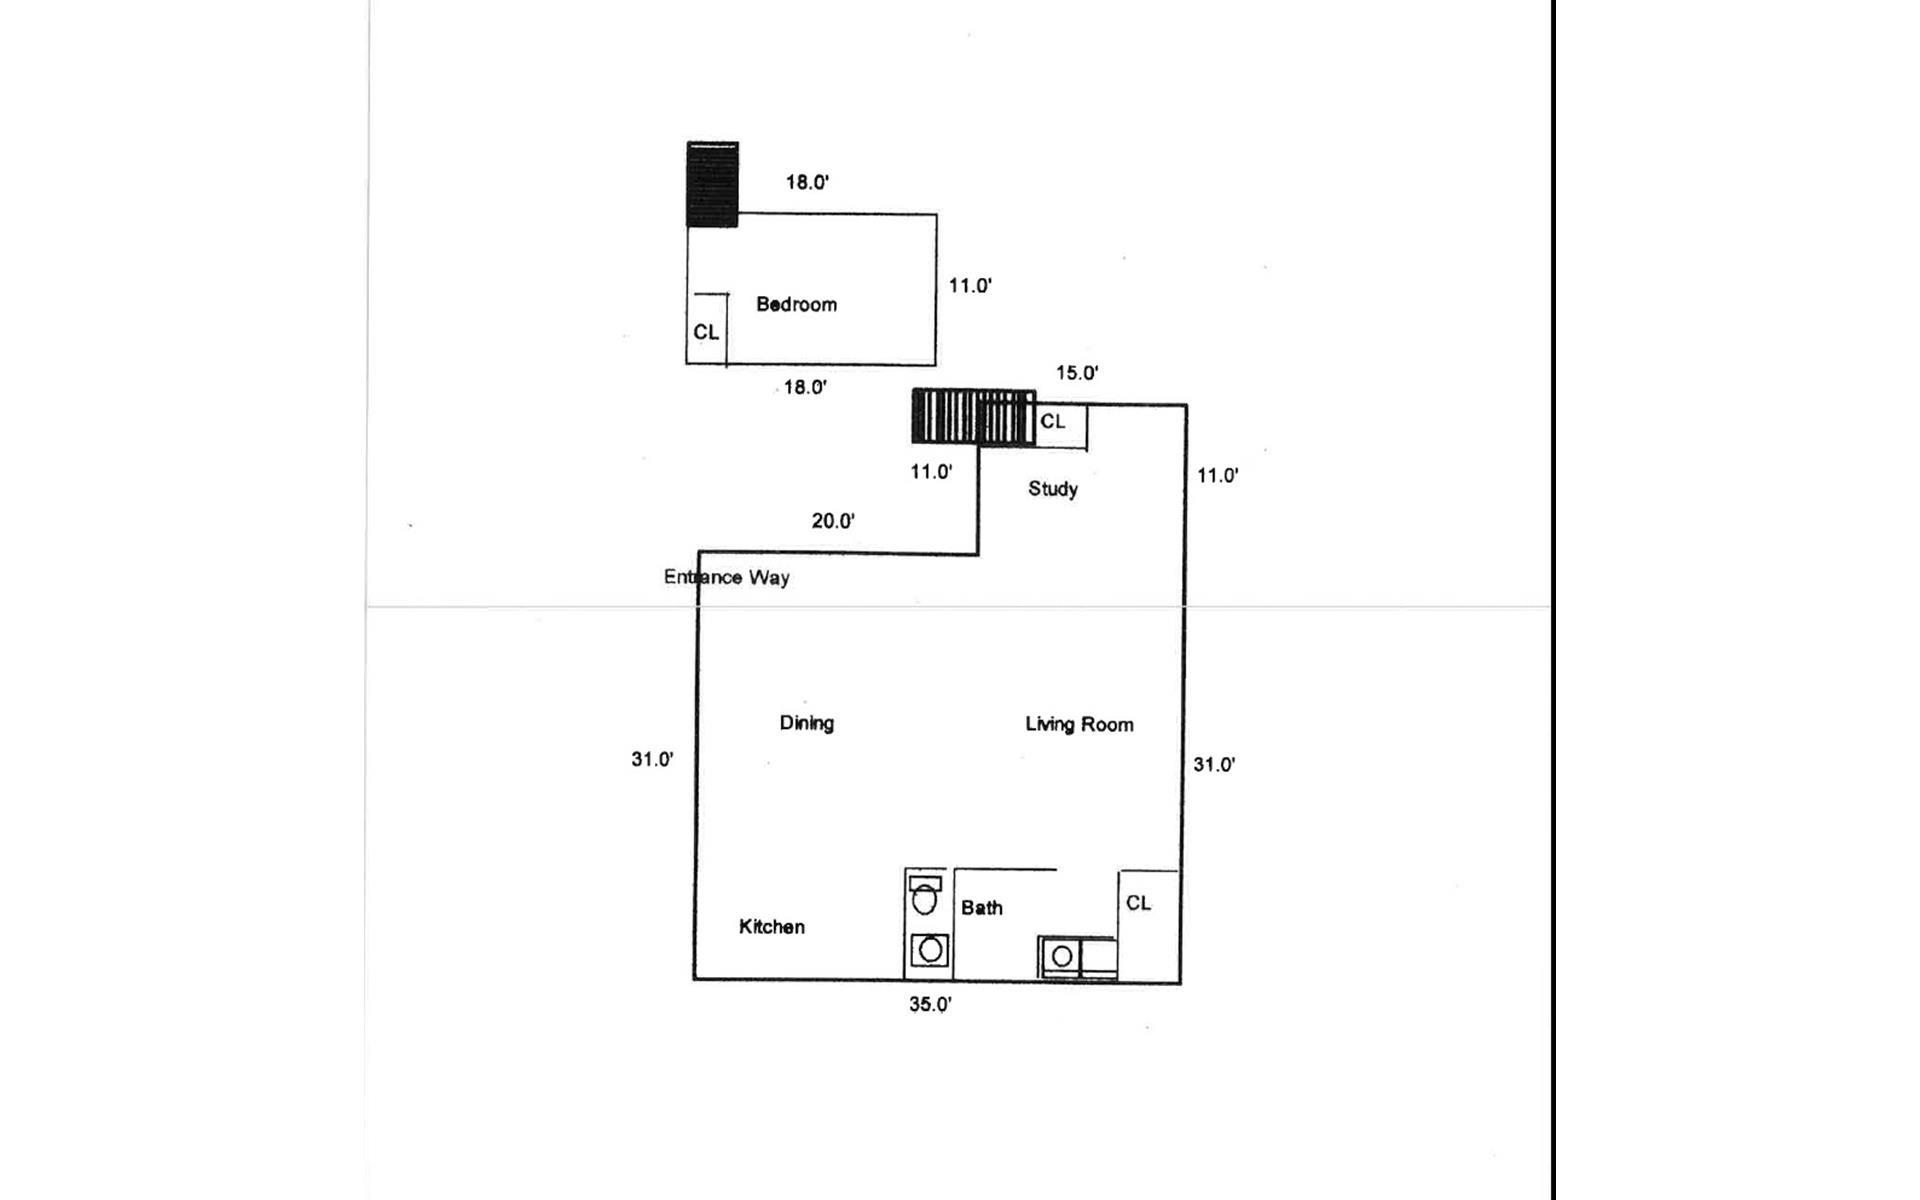 Floor plan of 68 Laight St, 4 - TriBeCa, New York